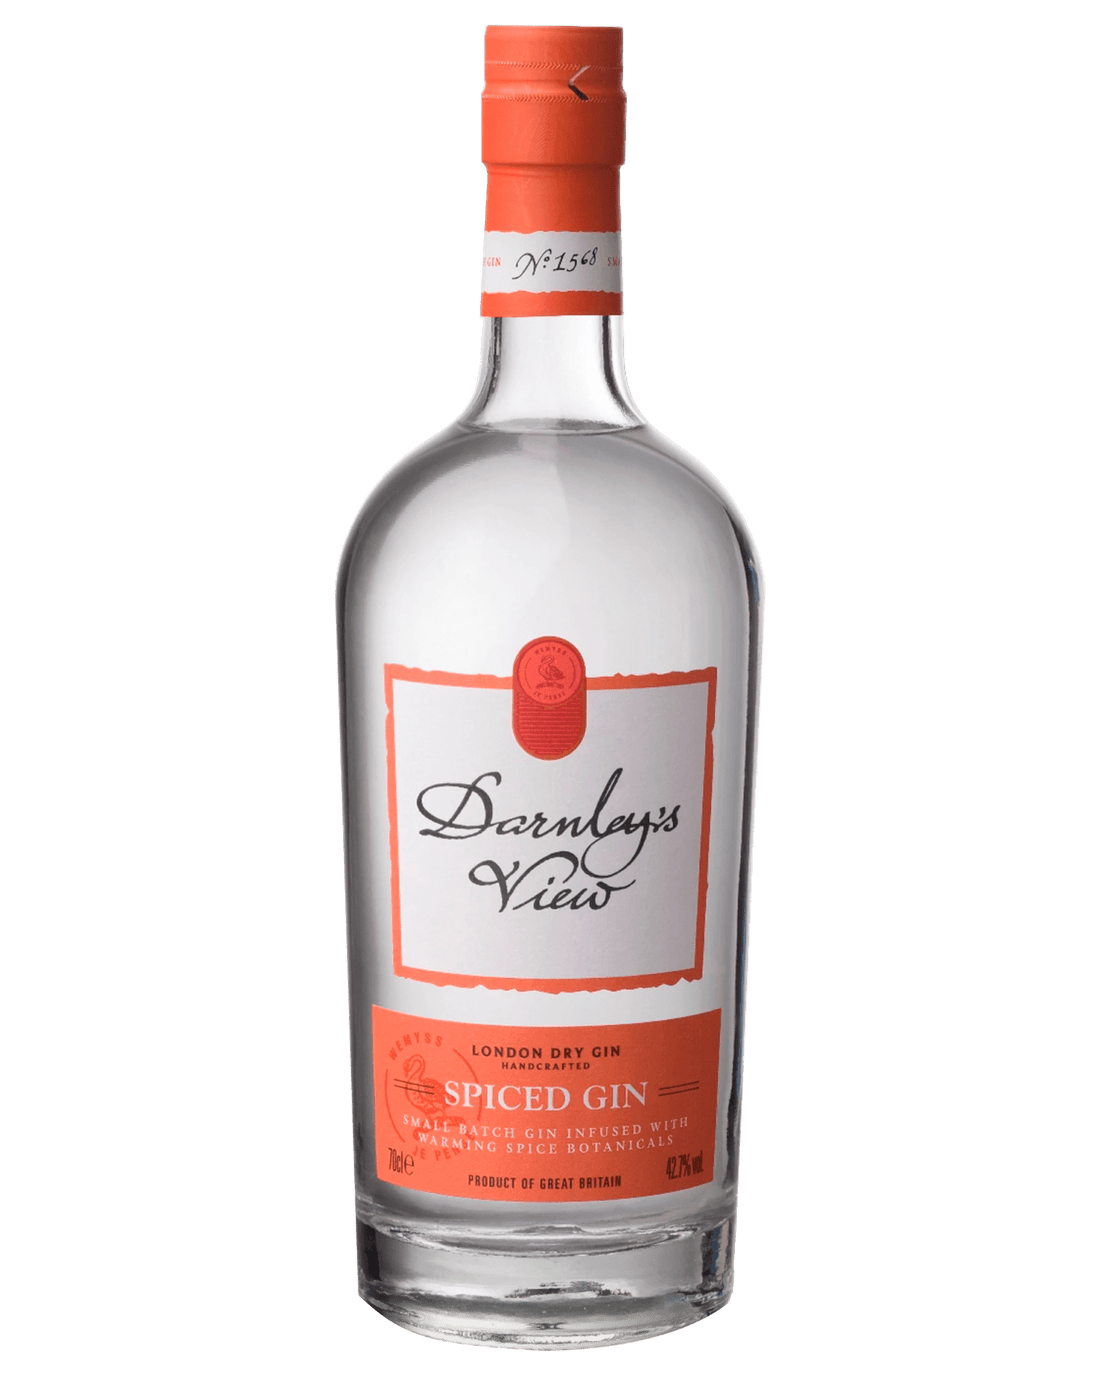 Darnley's View Spiced Gin (700ml)